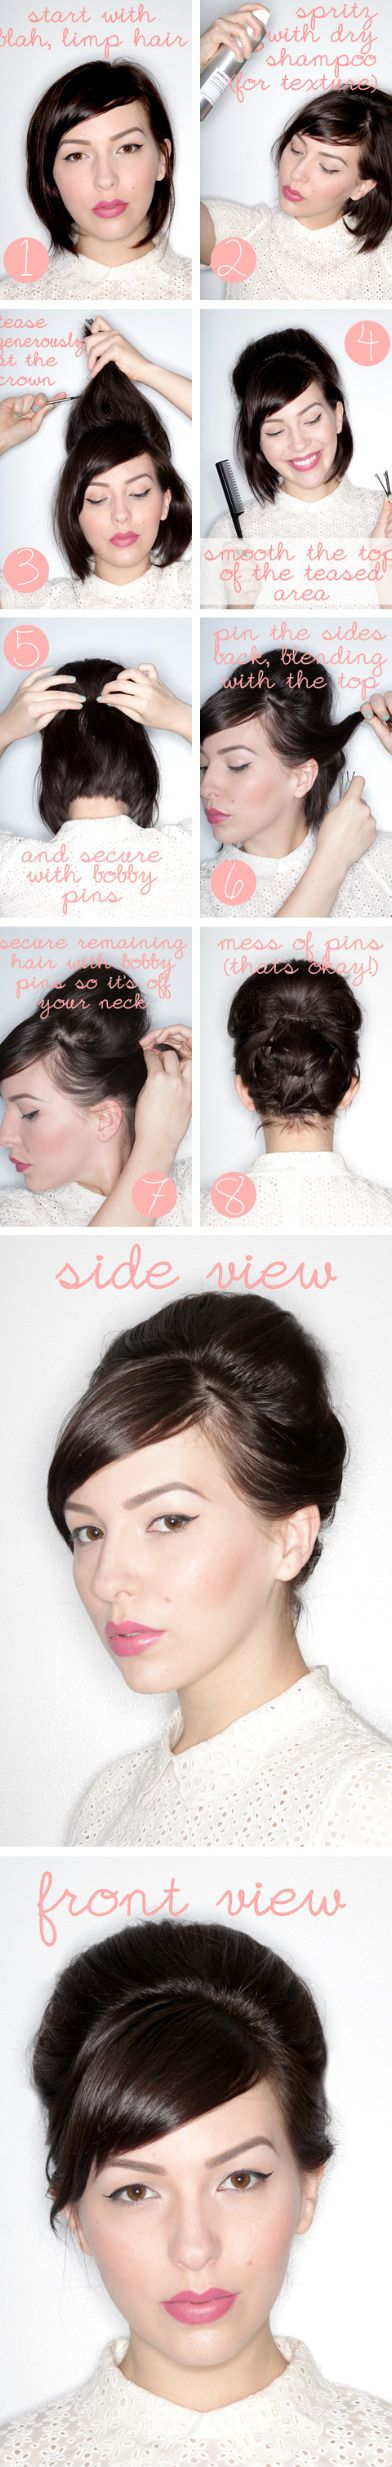 Possible updo for me for jessicaus wedding katieus wedding